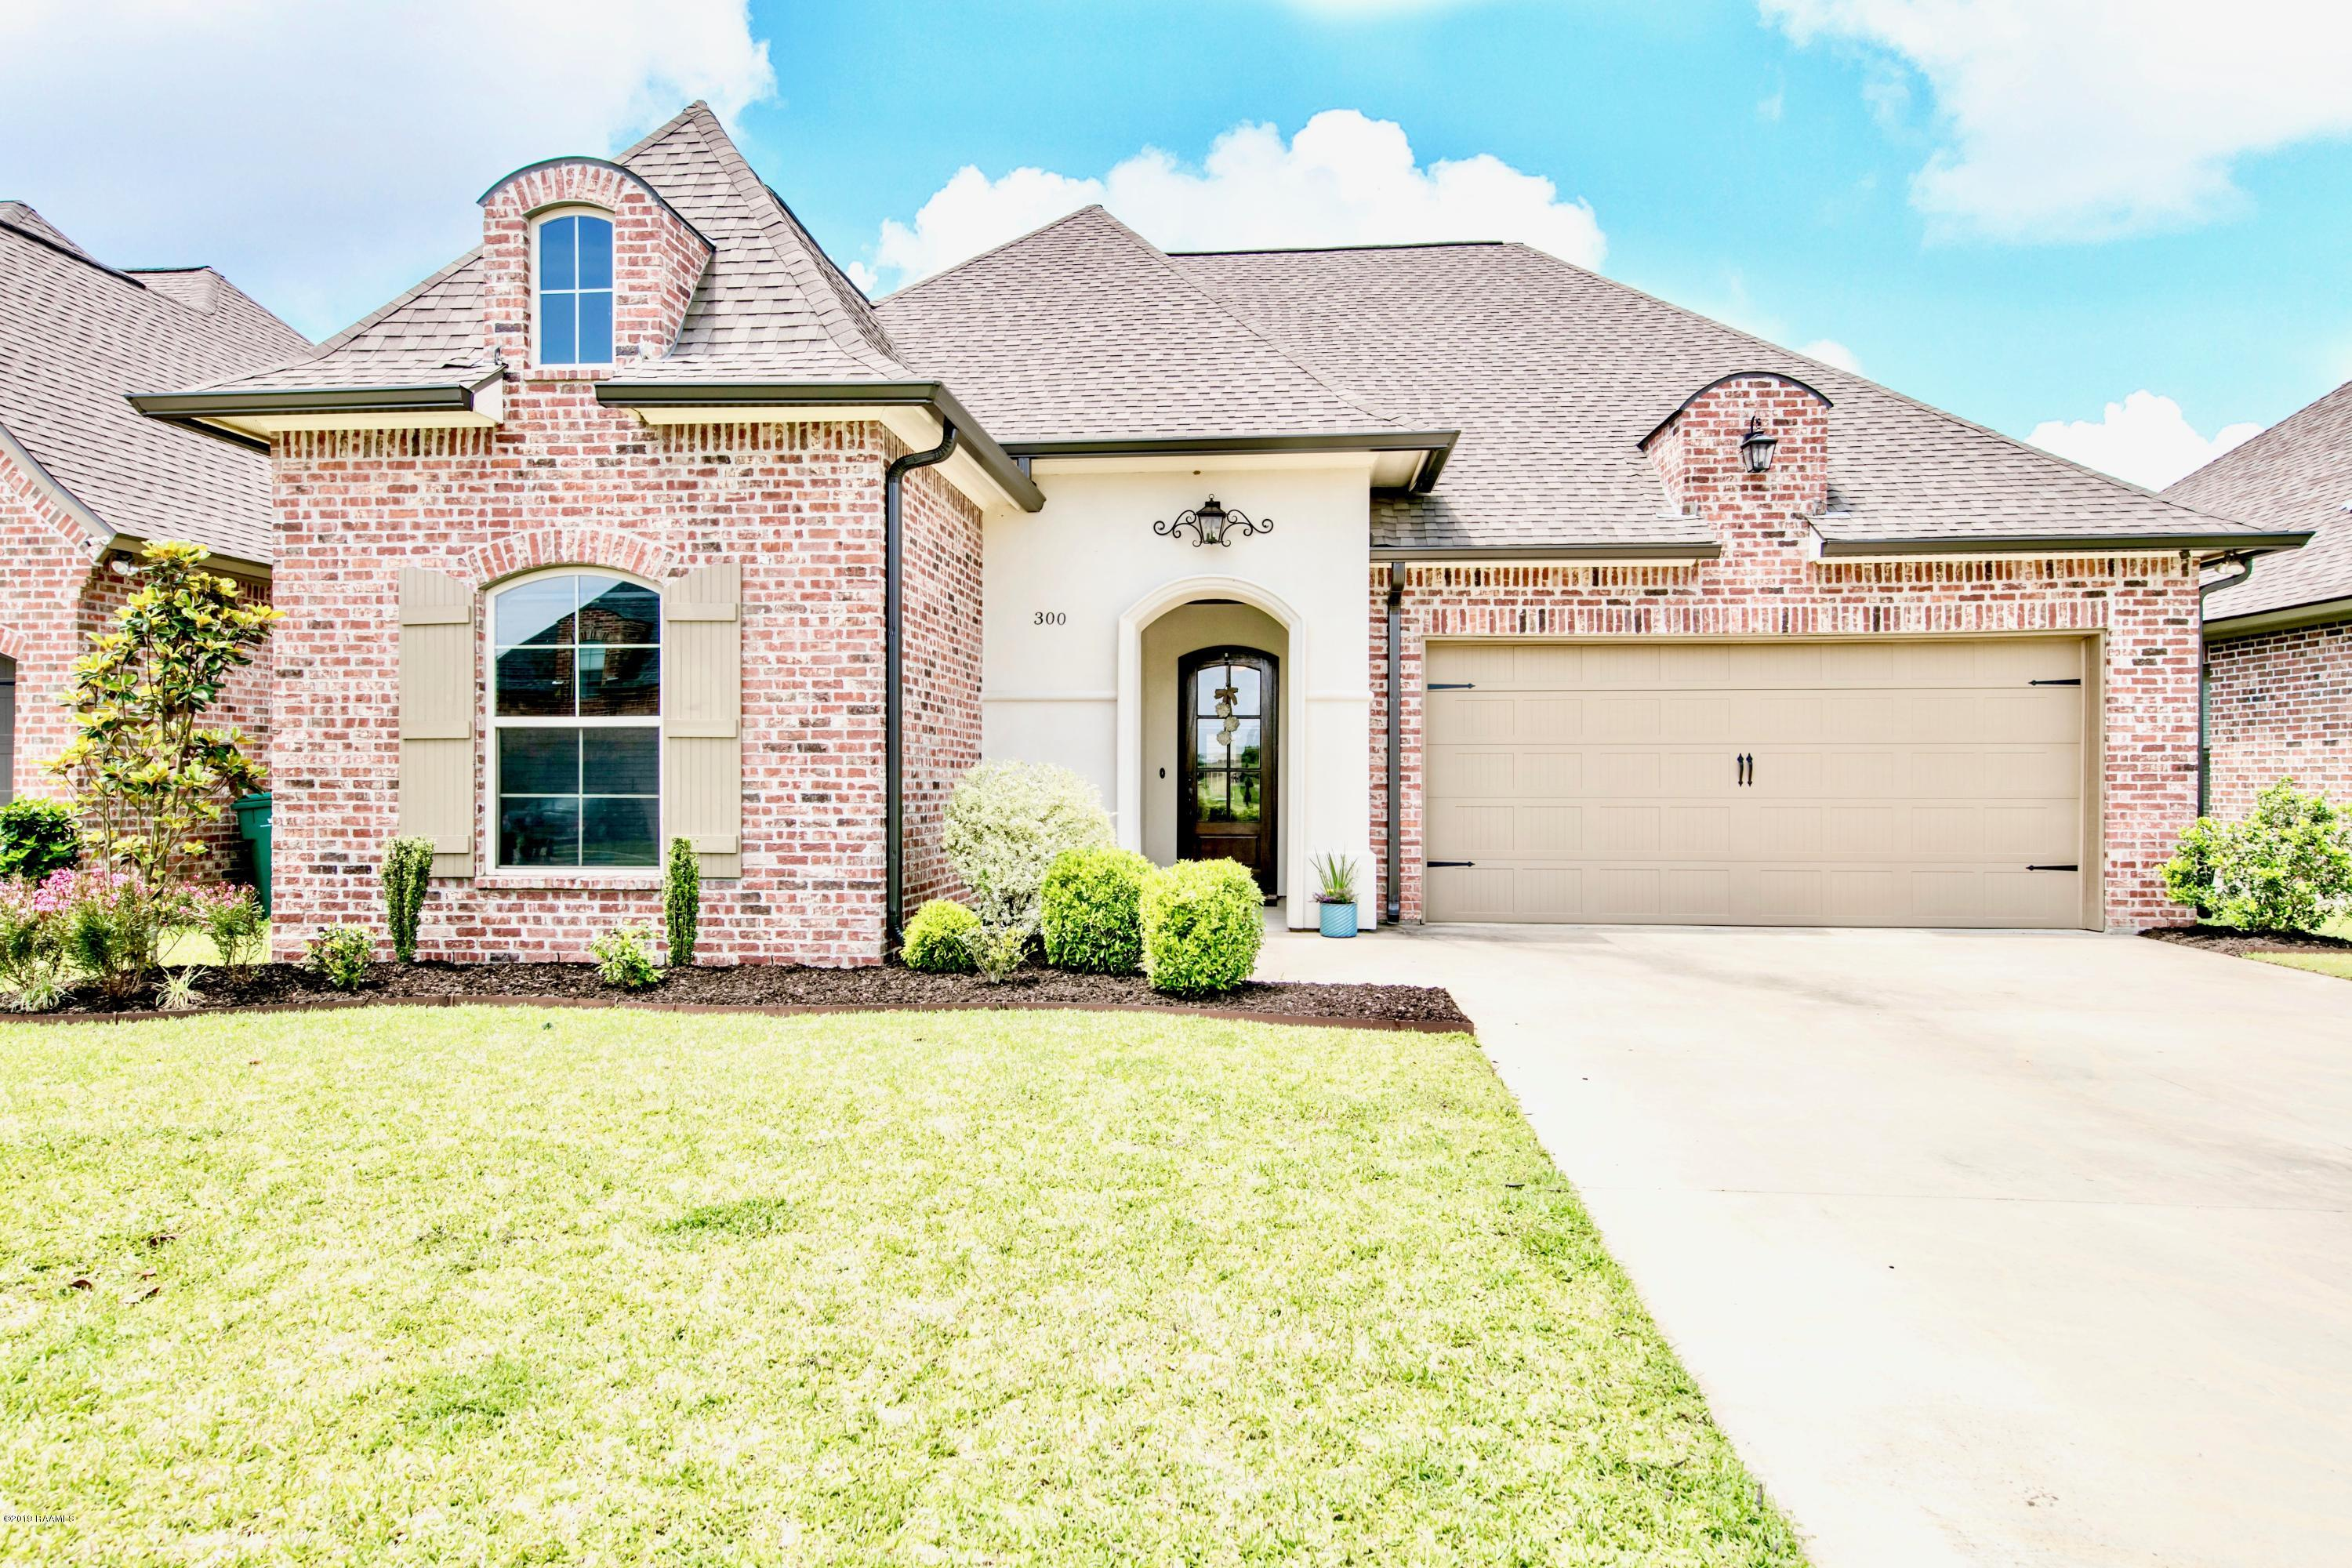 300 Cypress View Drive, Youngsville, LA 70592